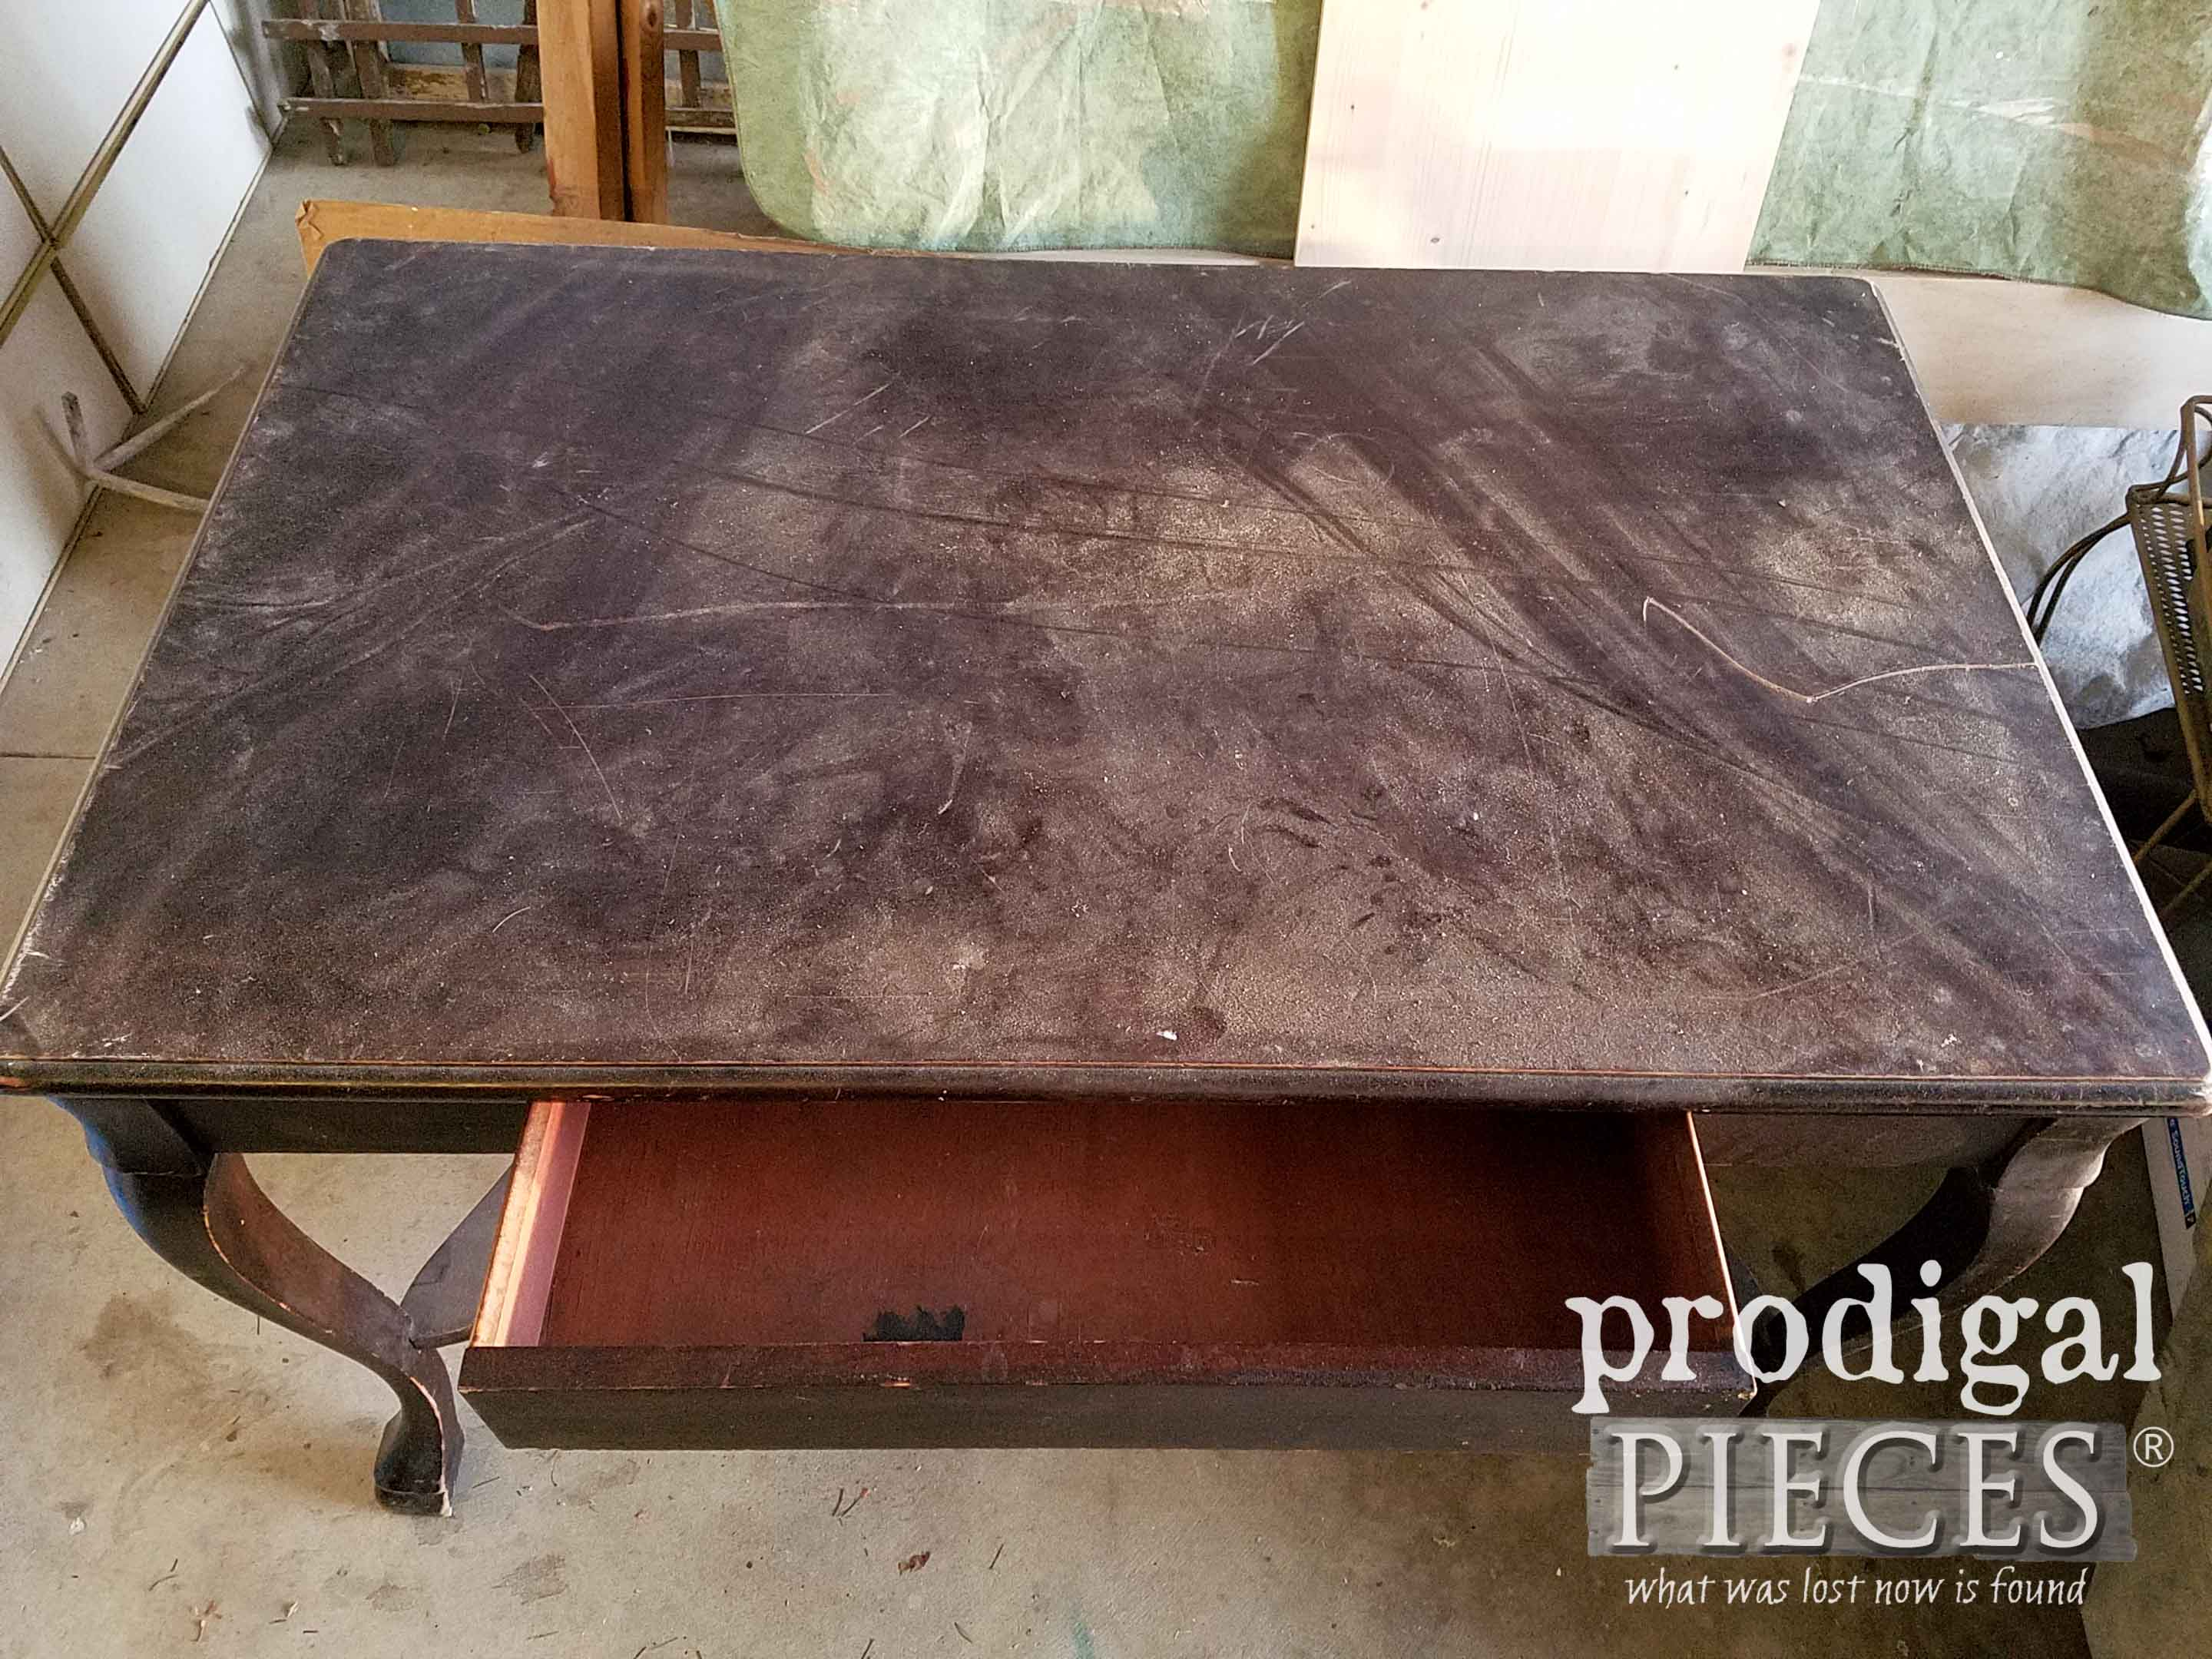 Wear on Antique Library Table Top | prodigalpieces.com